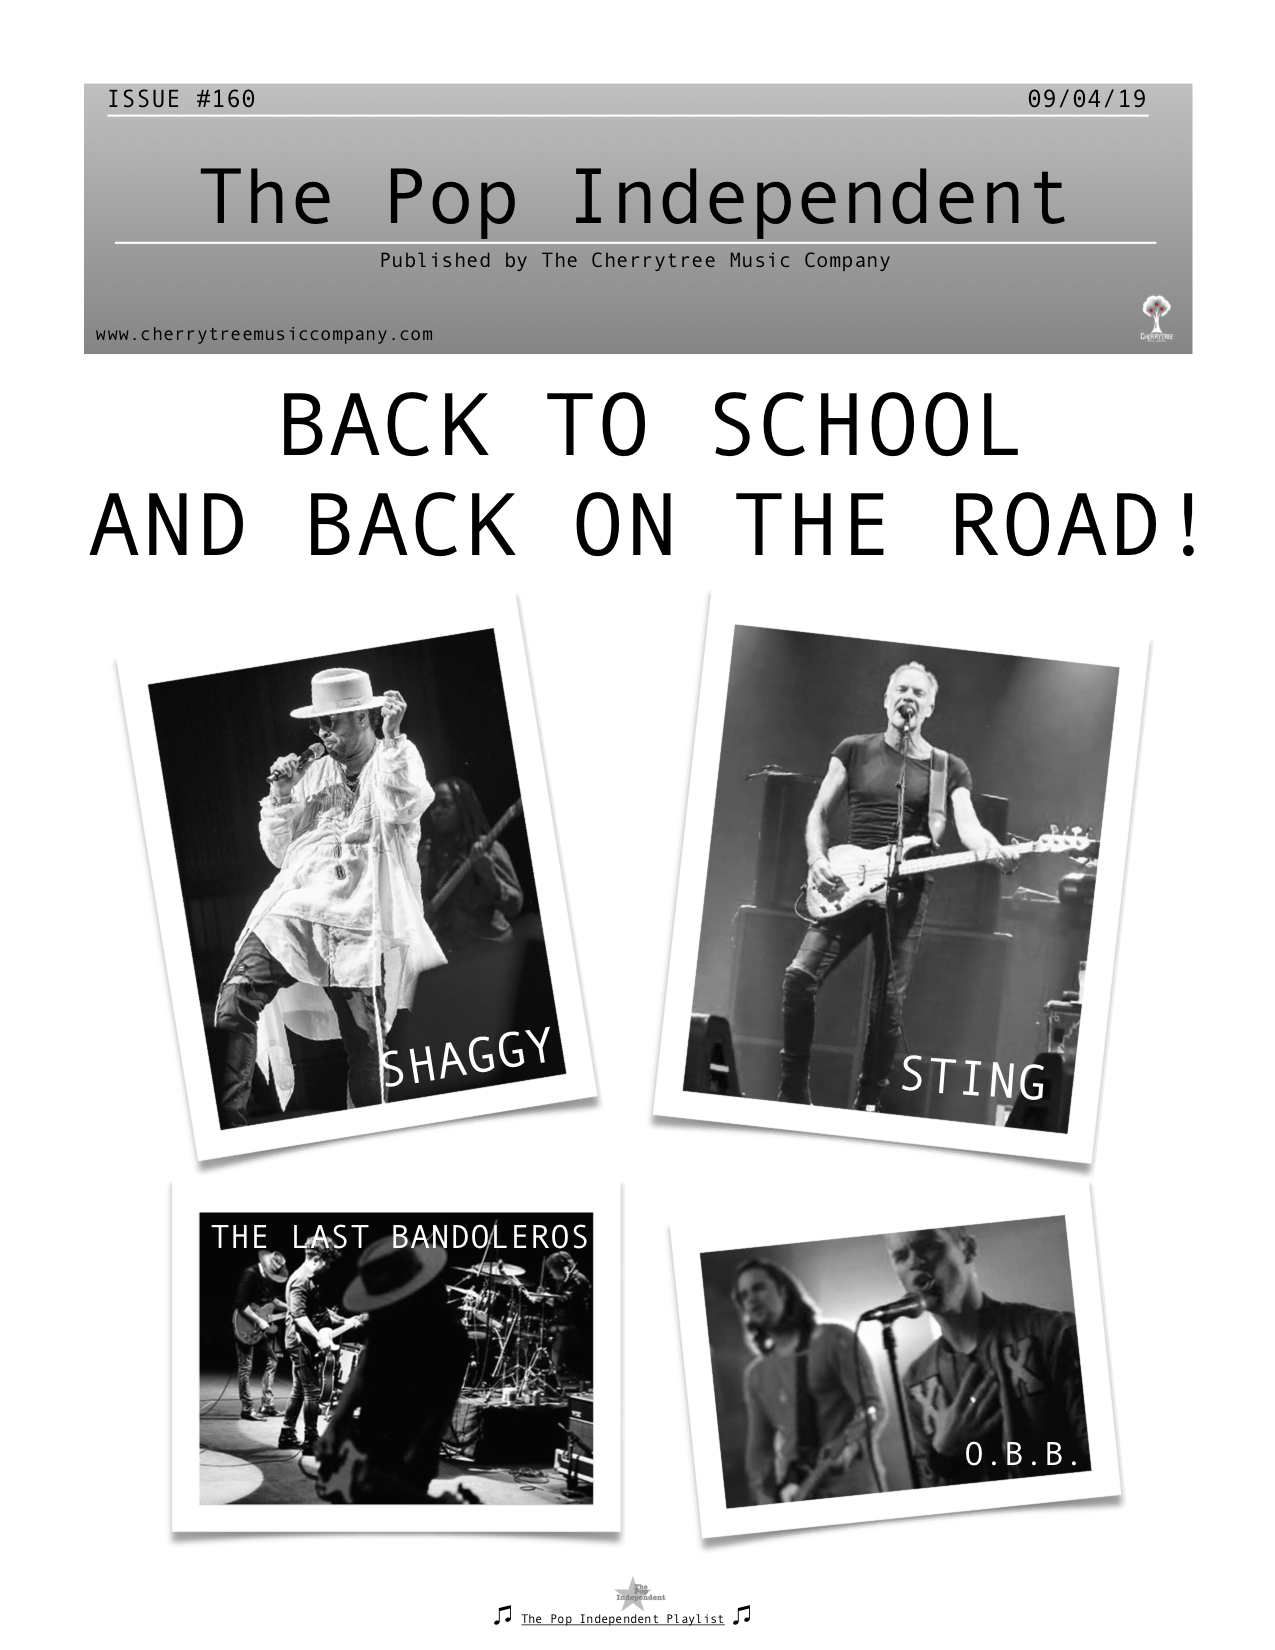 The Pop Independent, issue 160